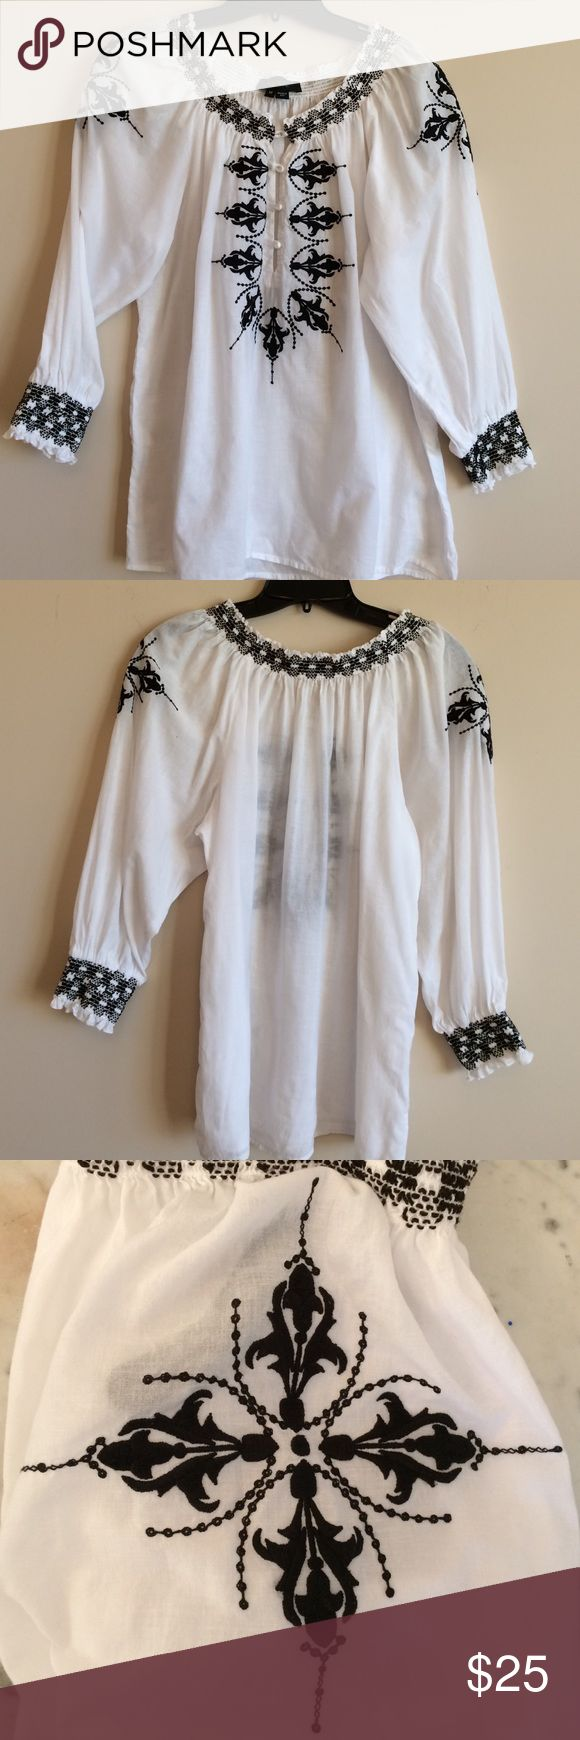 Karen Kane Black and White Embroidered Peasant Top Gorgeous Karen Kane black and white embroidered peasant top. Embroidery on shoulders also. Excellent condition. Karen Kane Tops Tees - Long Sleeve